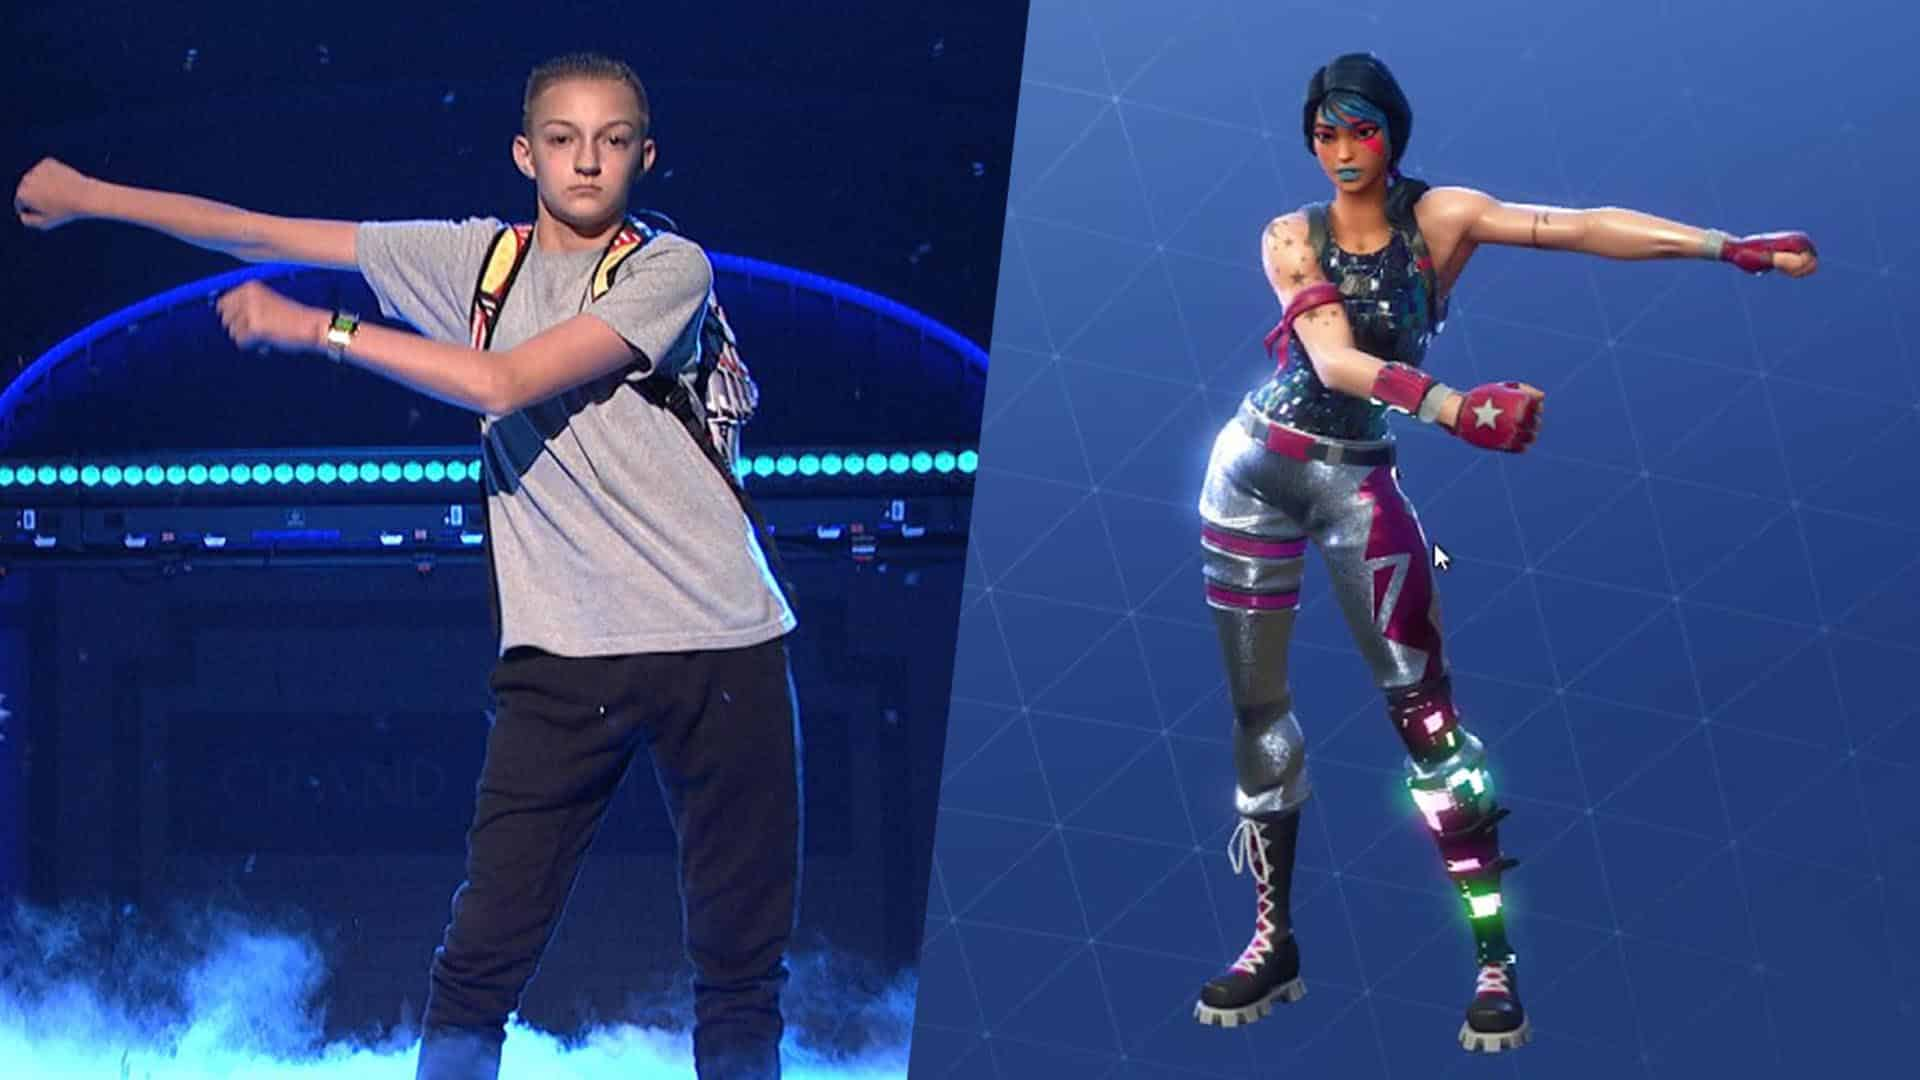 01b2200a500e ... Over Floss Dance in Fortnite. Backpack Kid Suing Epic